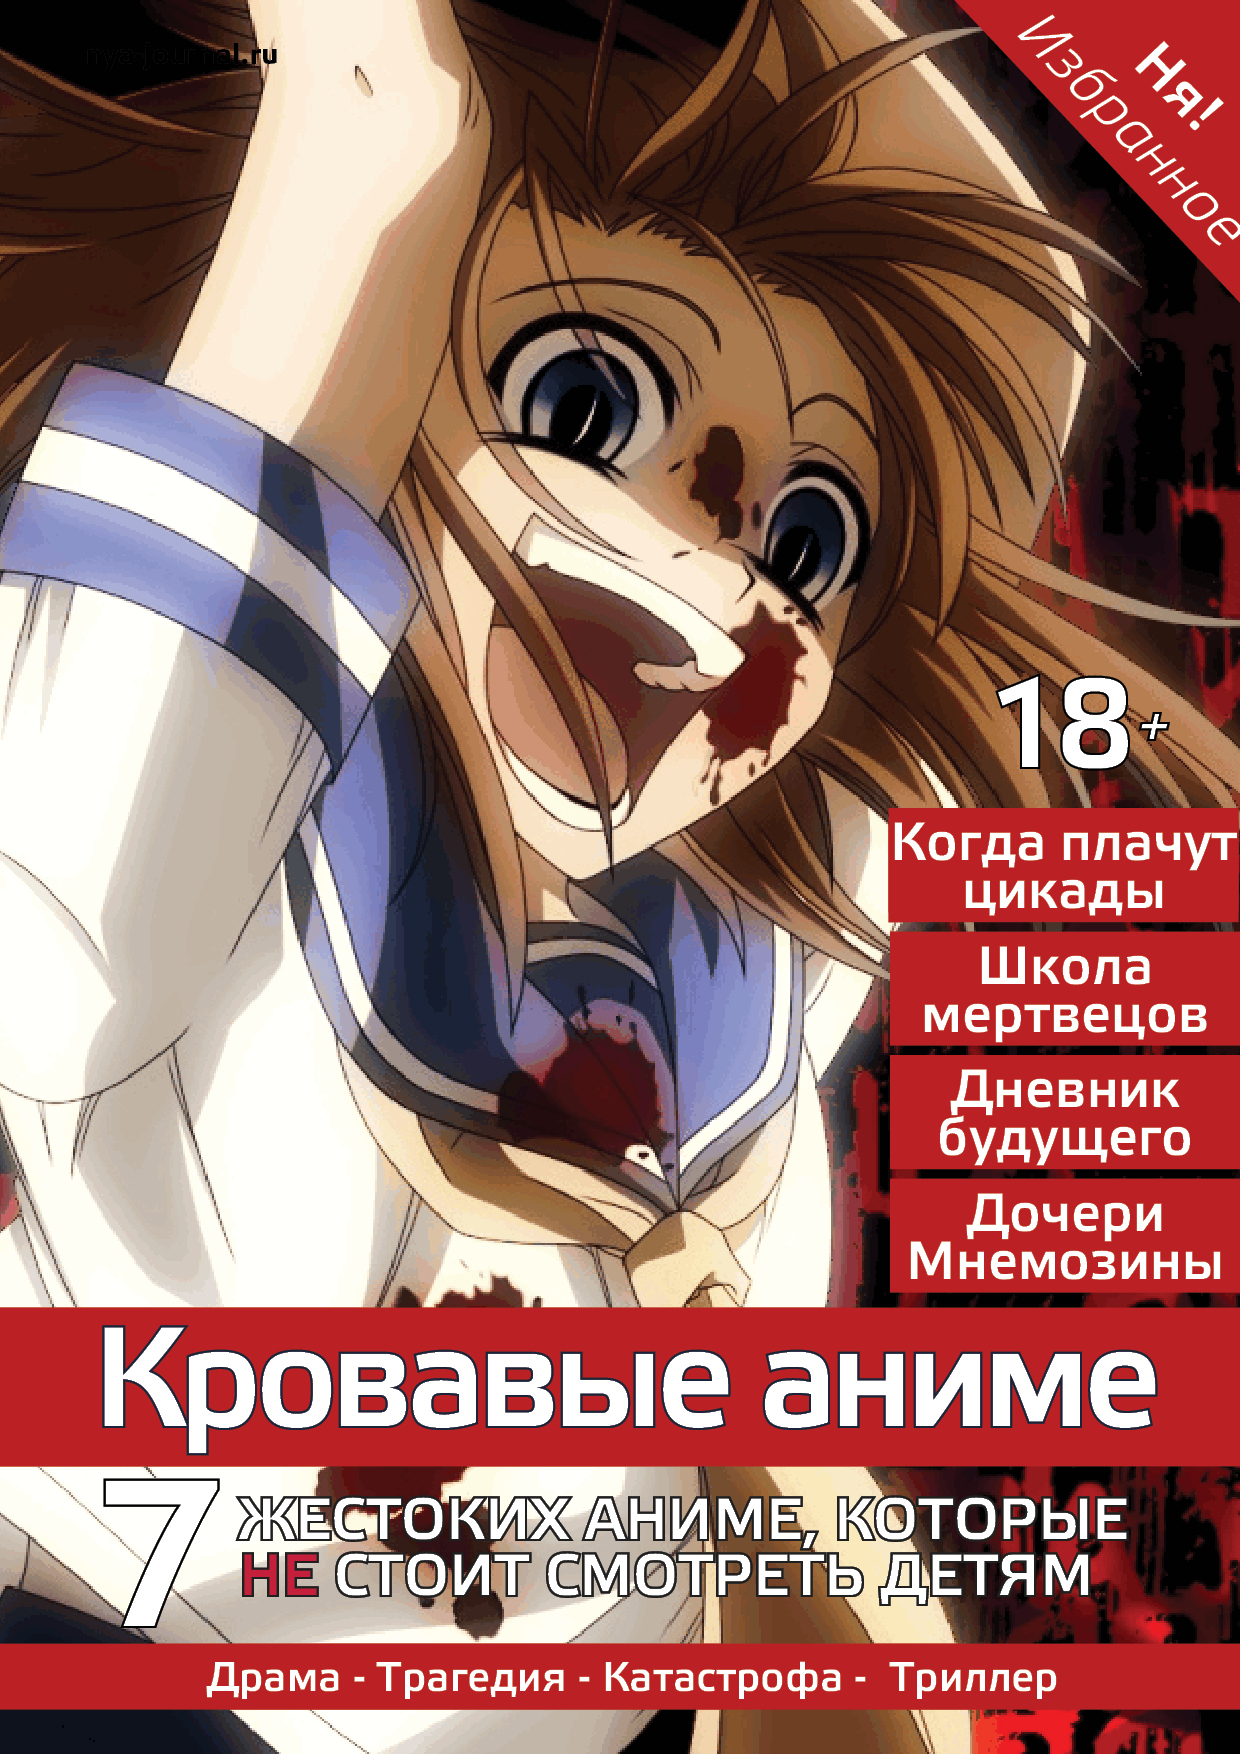 Аниме Страна чудес смертников - Deadman ...: nya-journal.ru/372-anime-strana-chudes-smertnikov-deadman...